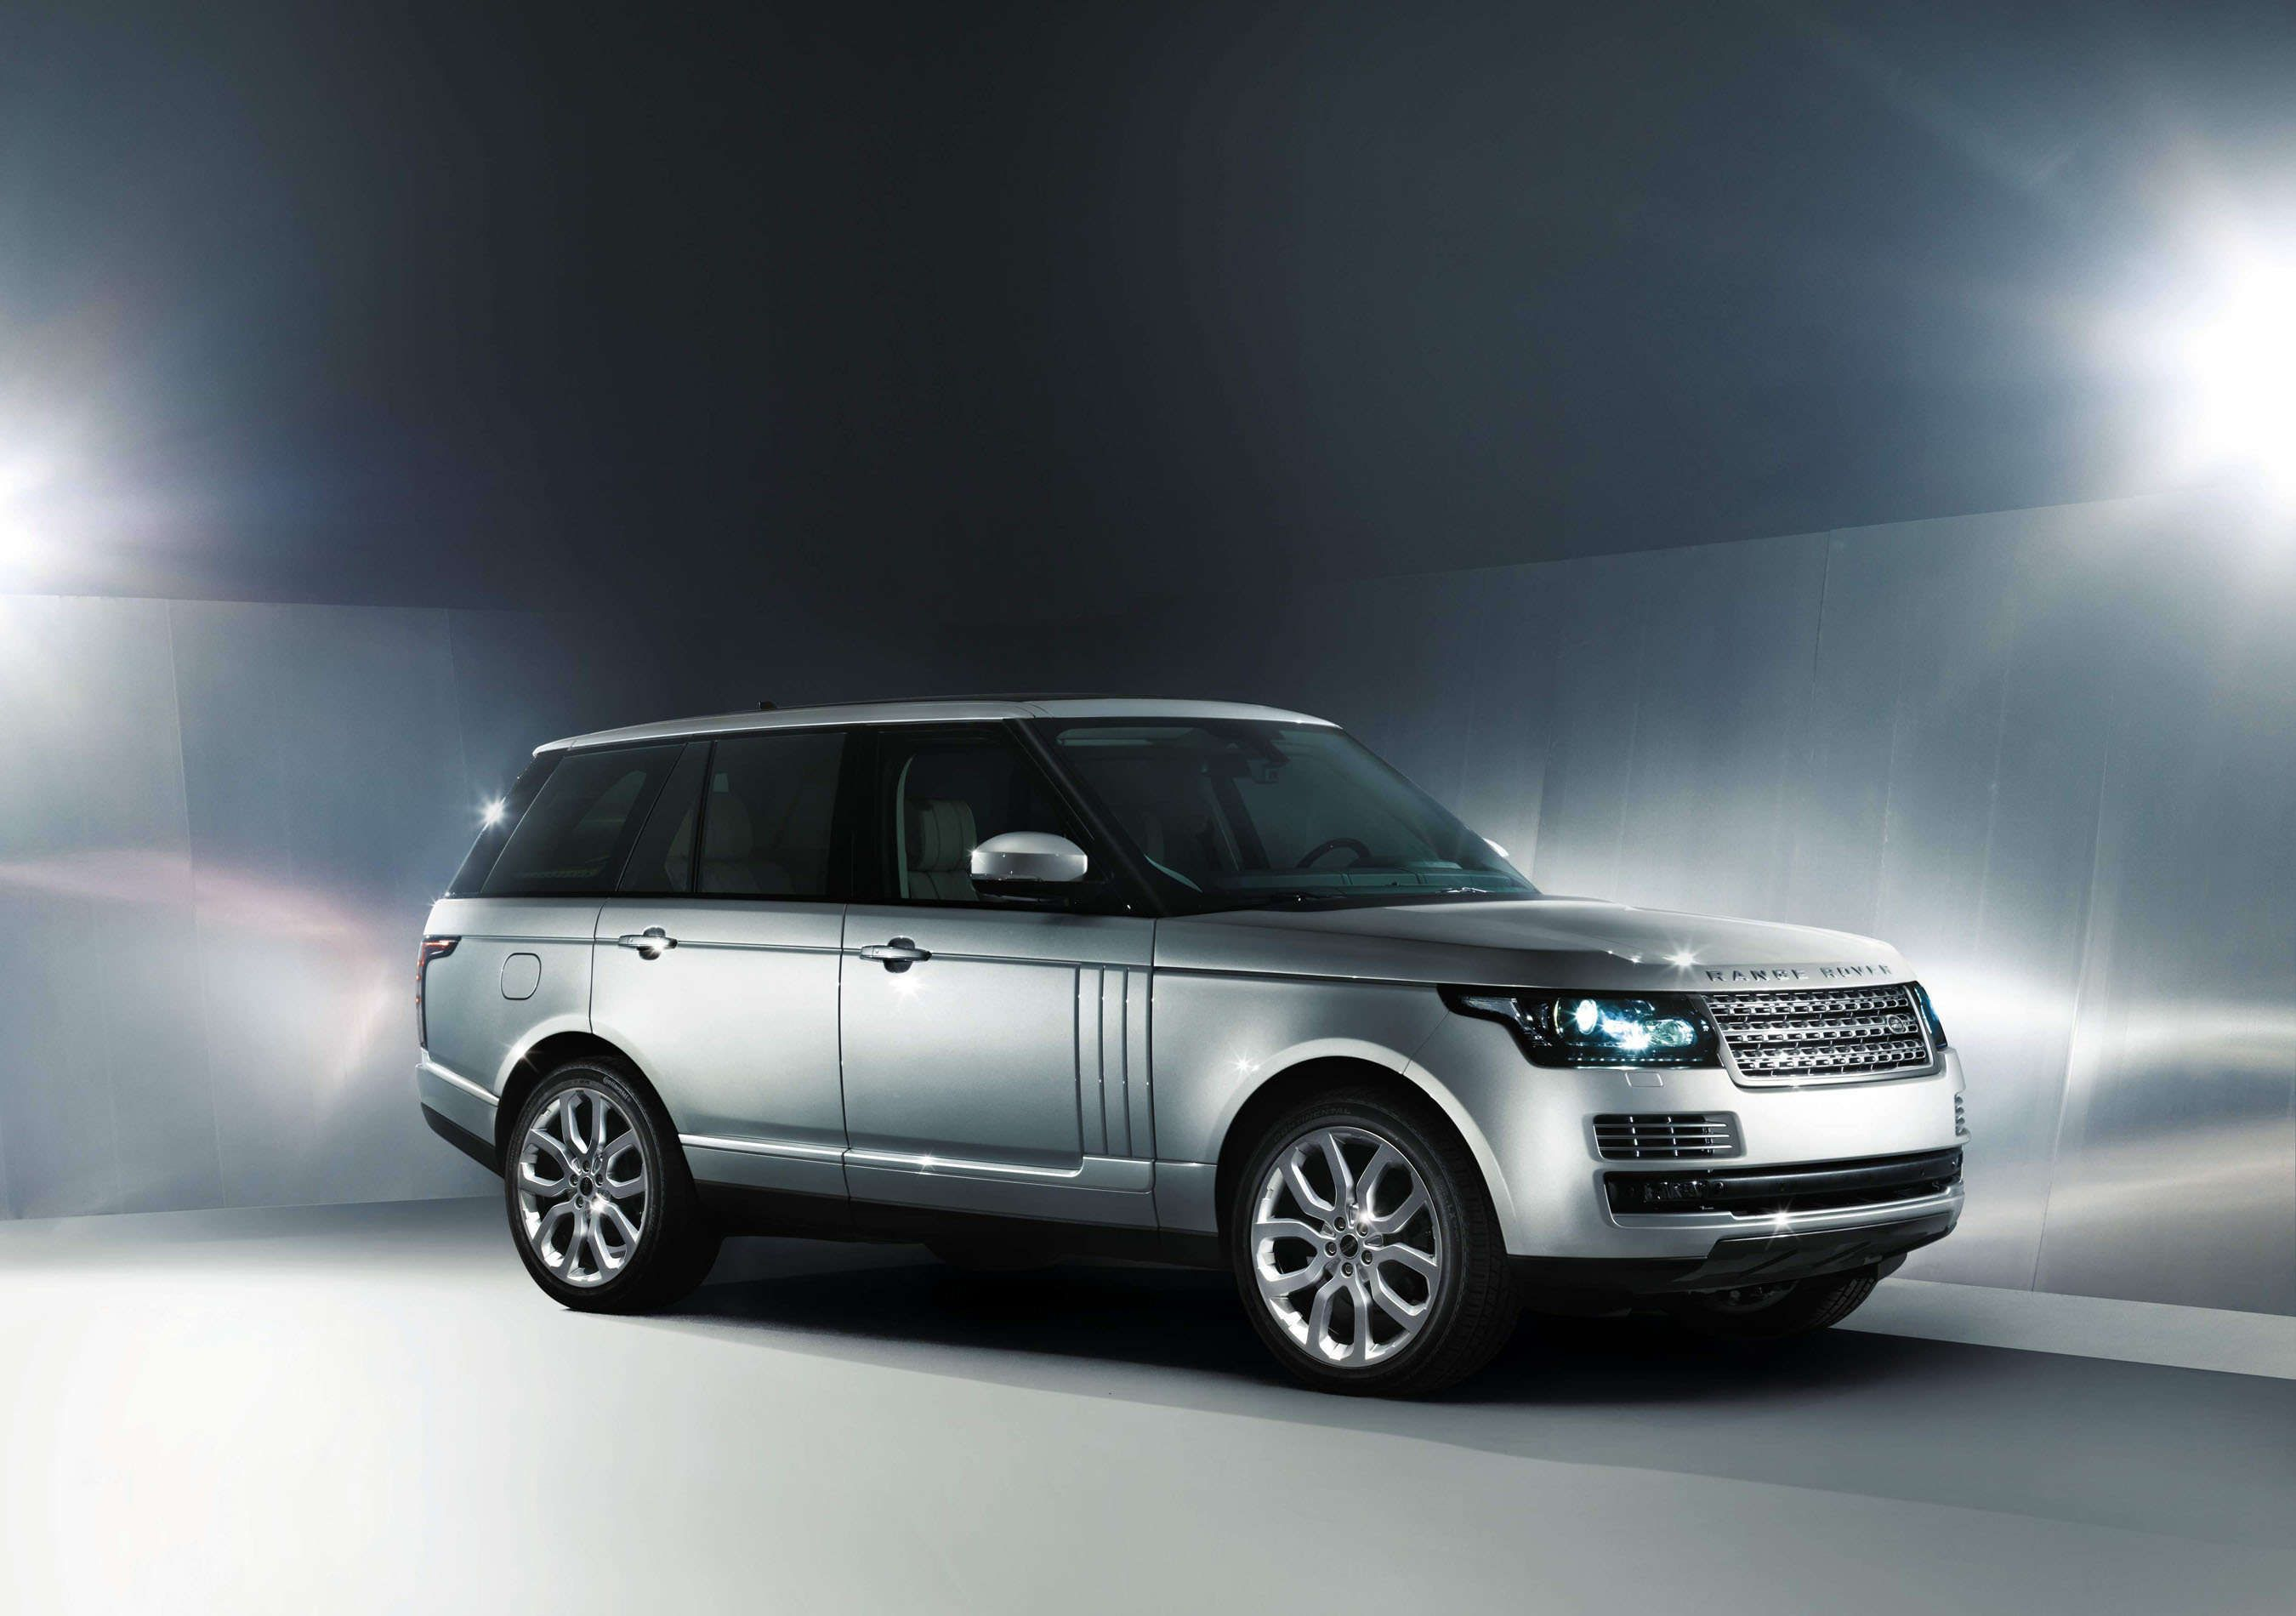 range rover 2013 mmm....great design | Products I Love | Pinterest ...